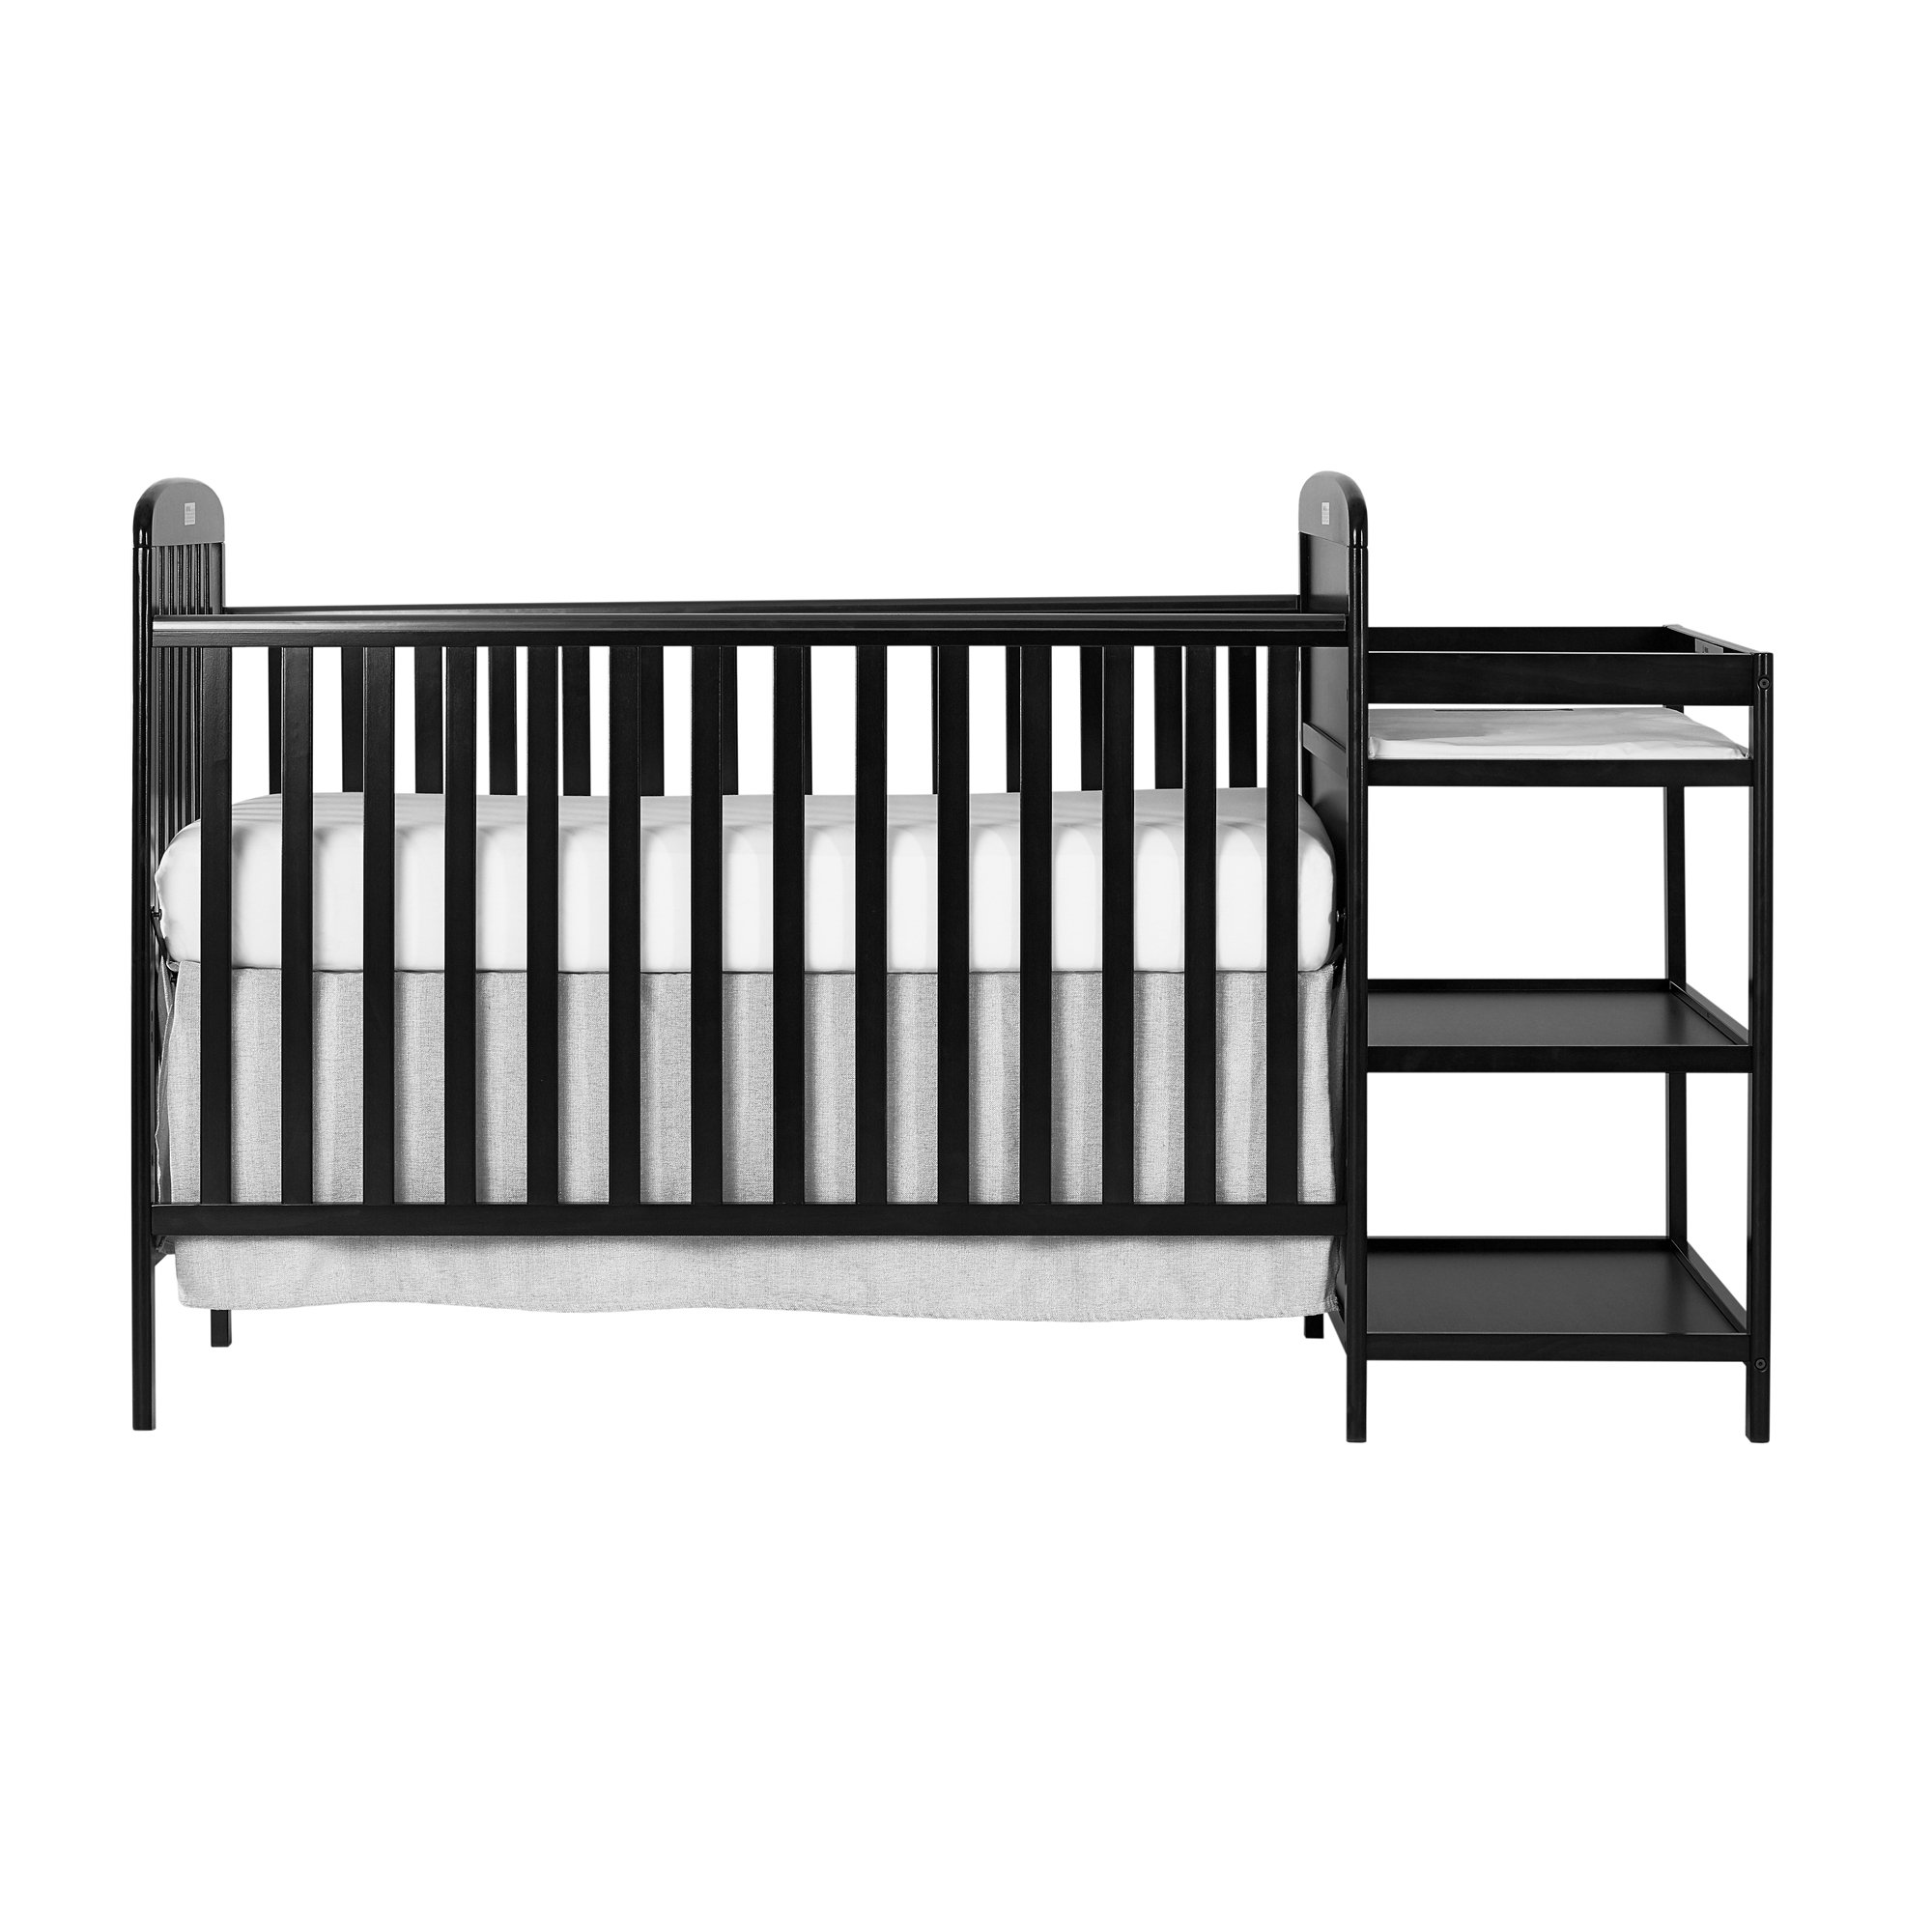 Dream On Me, Anna 4 in 1 Full Size Crib and Changing Table Combo by Dream On Me